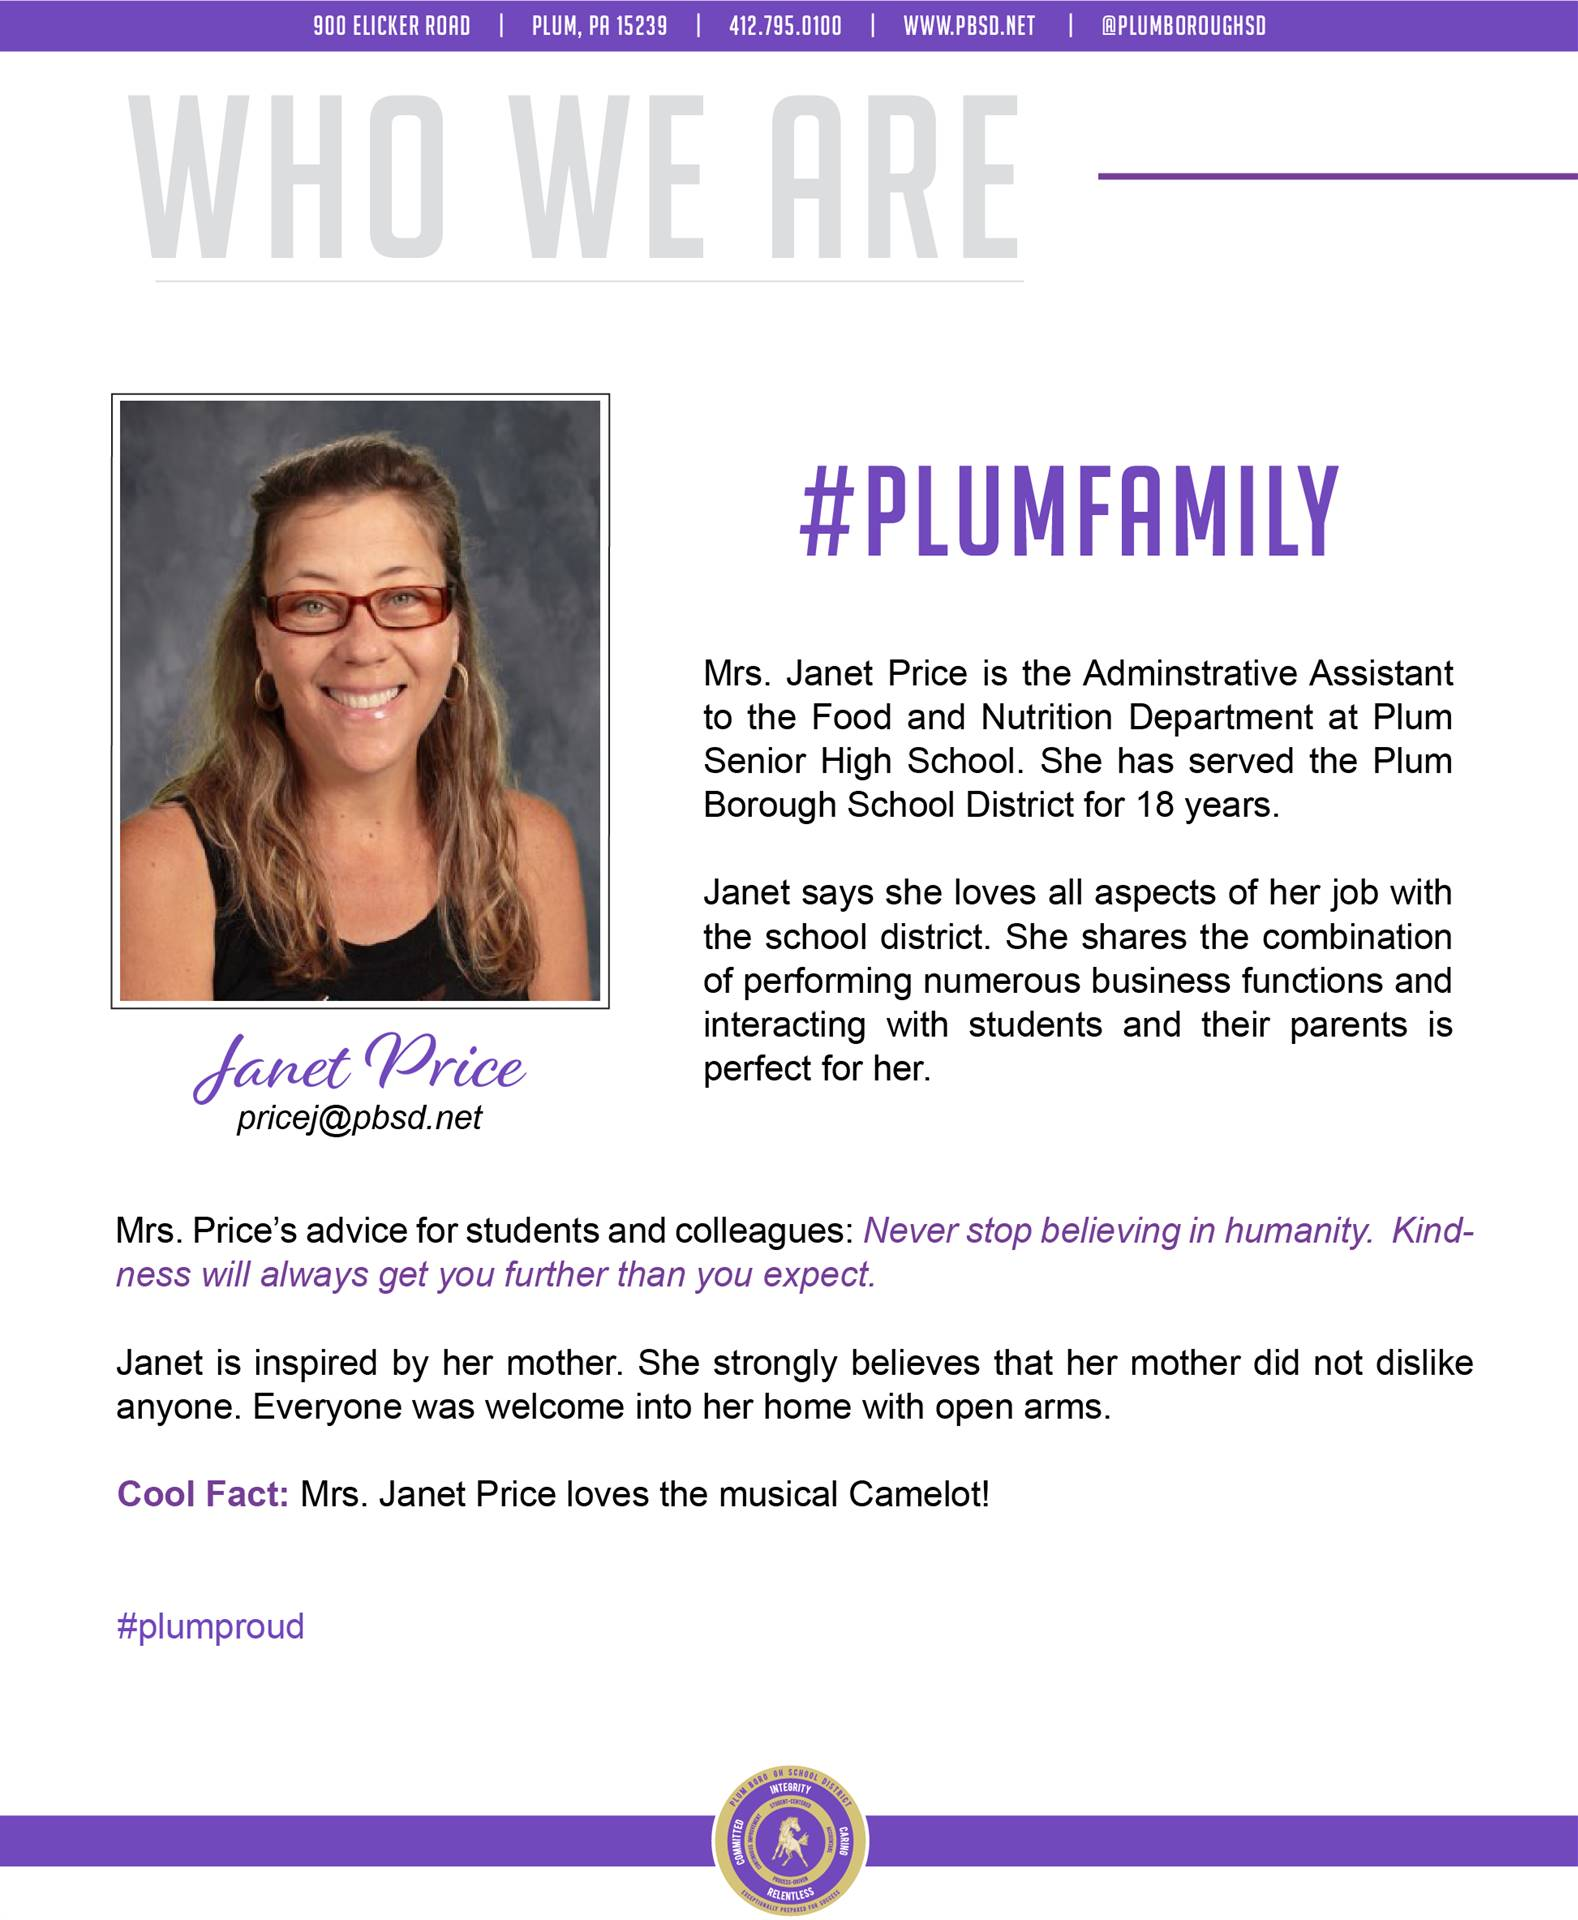 Who We Are Wednesday features Janet Price.